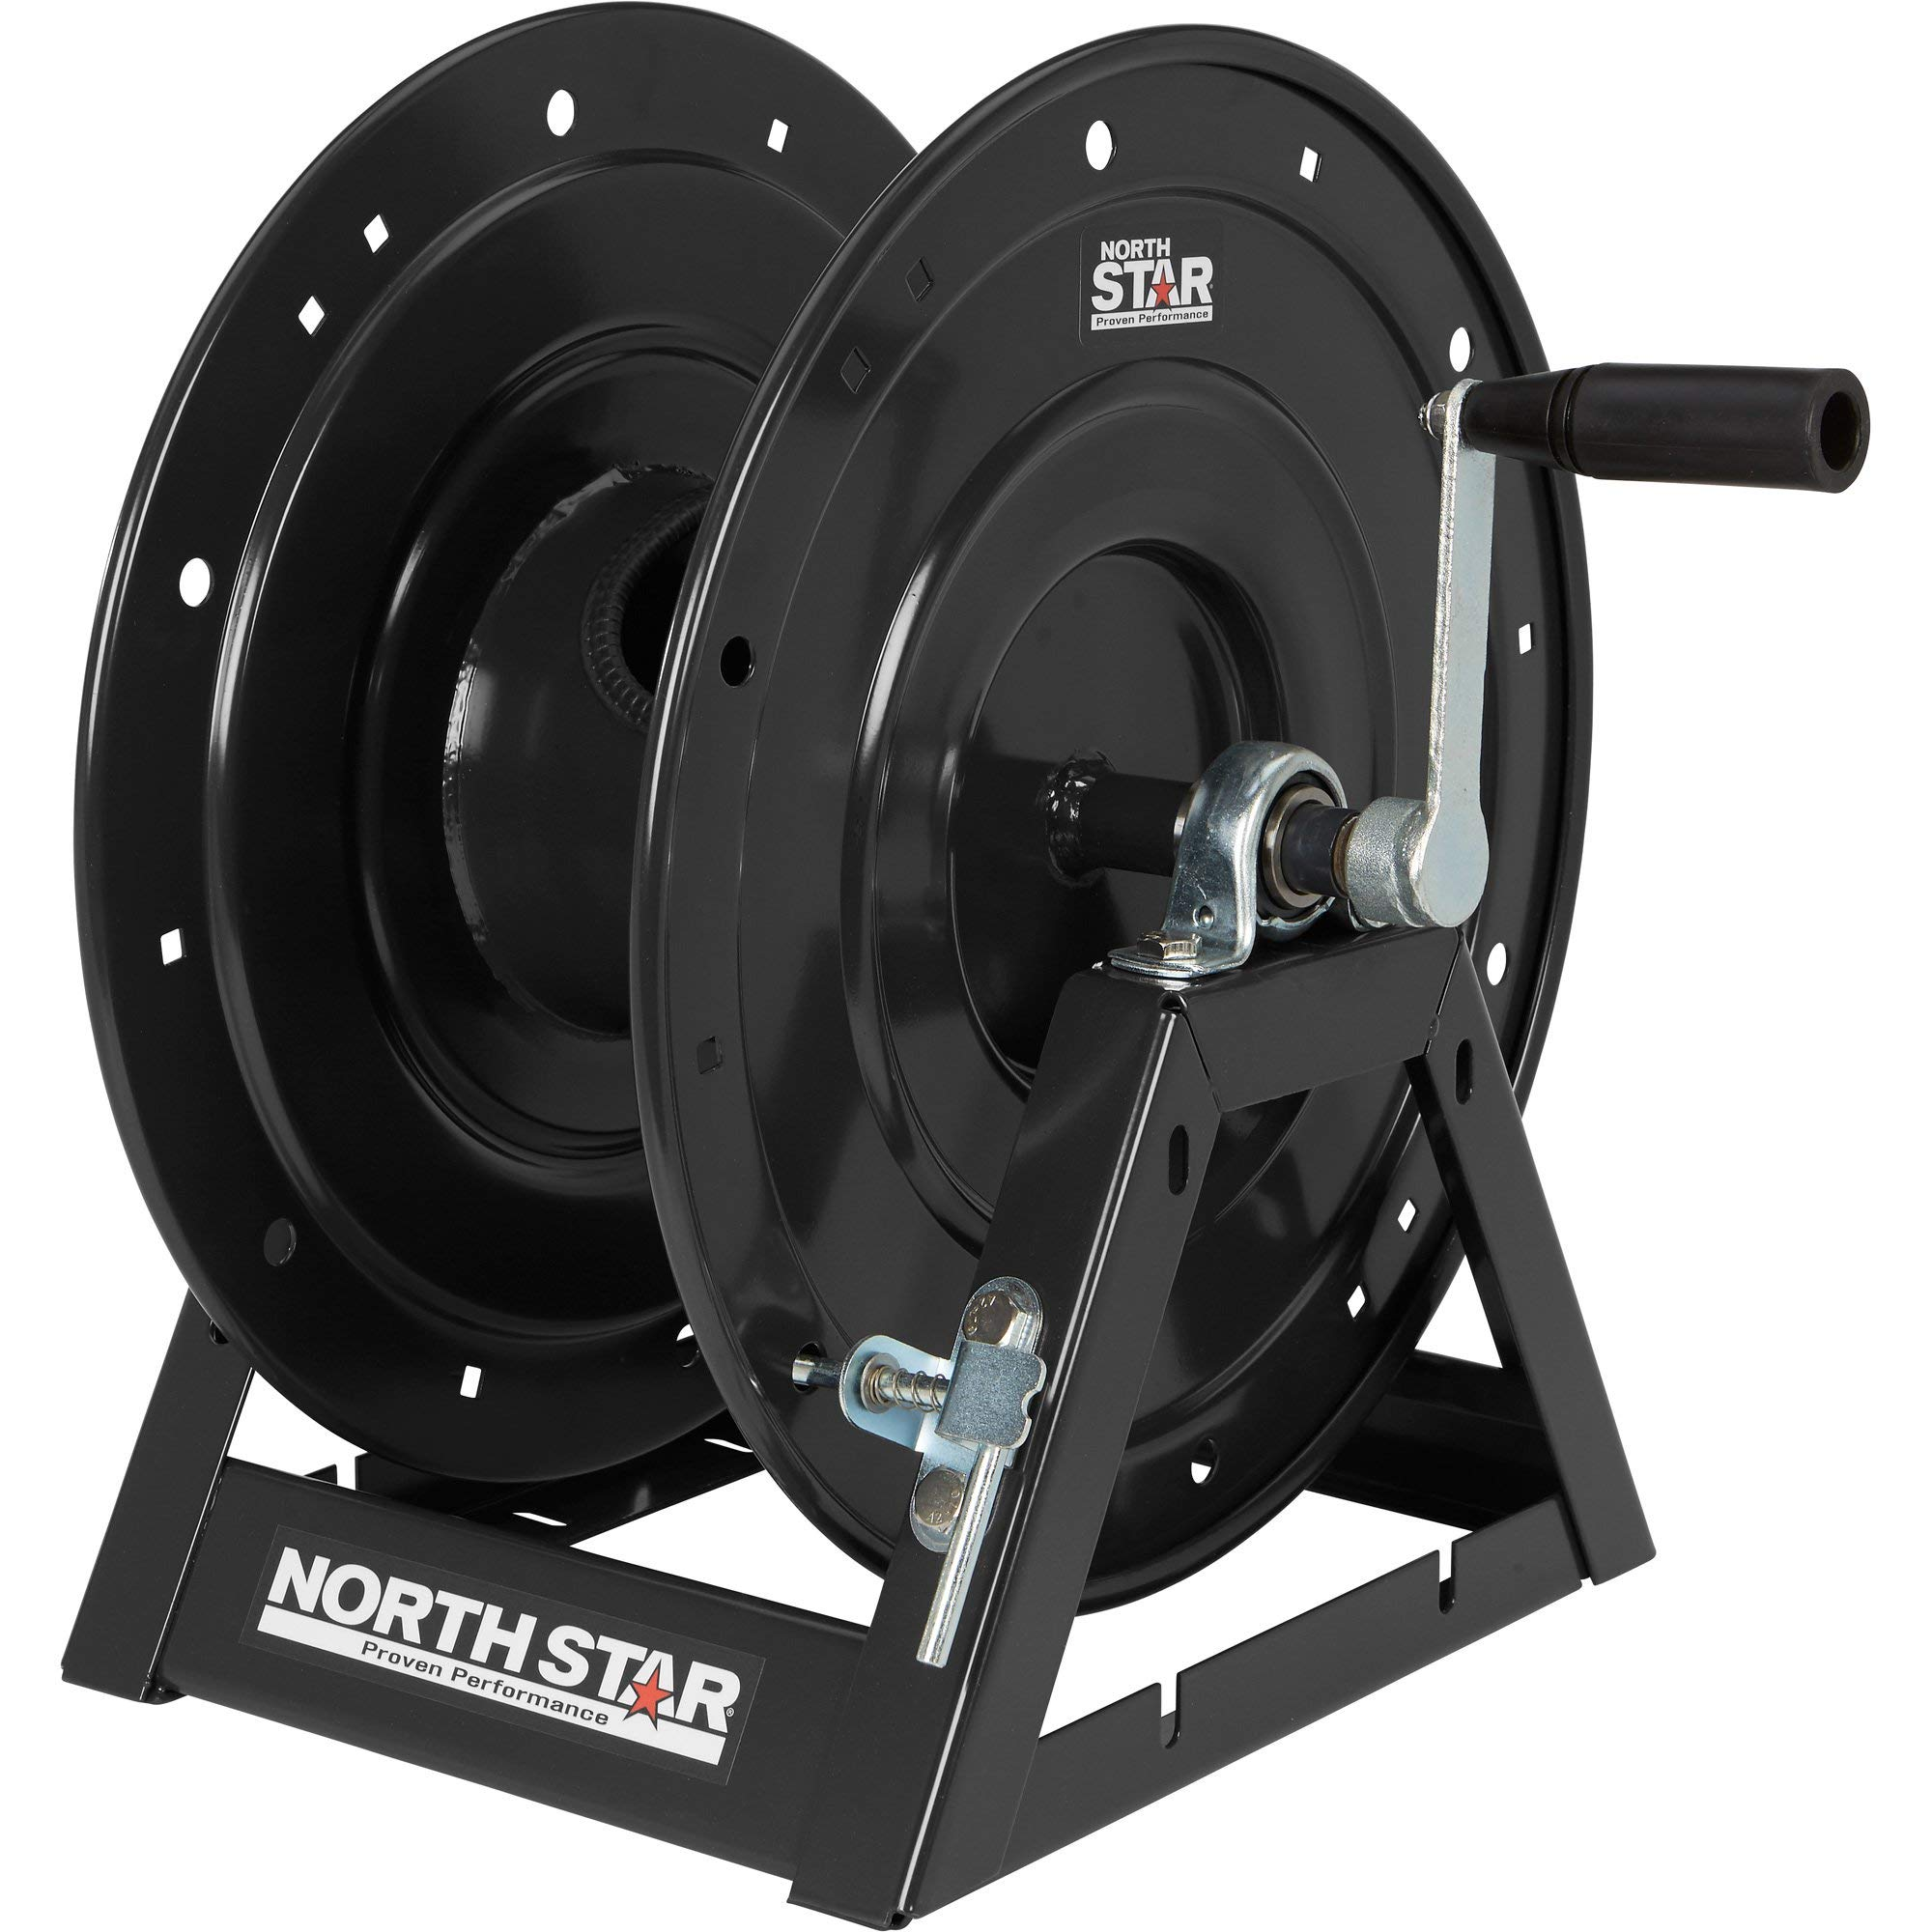 NorthStar Heavy-Duty A-Frame Hose Reel - 5000 PSI, 150ft. Capacity by NorthStar